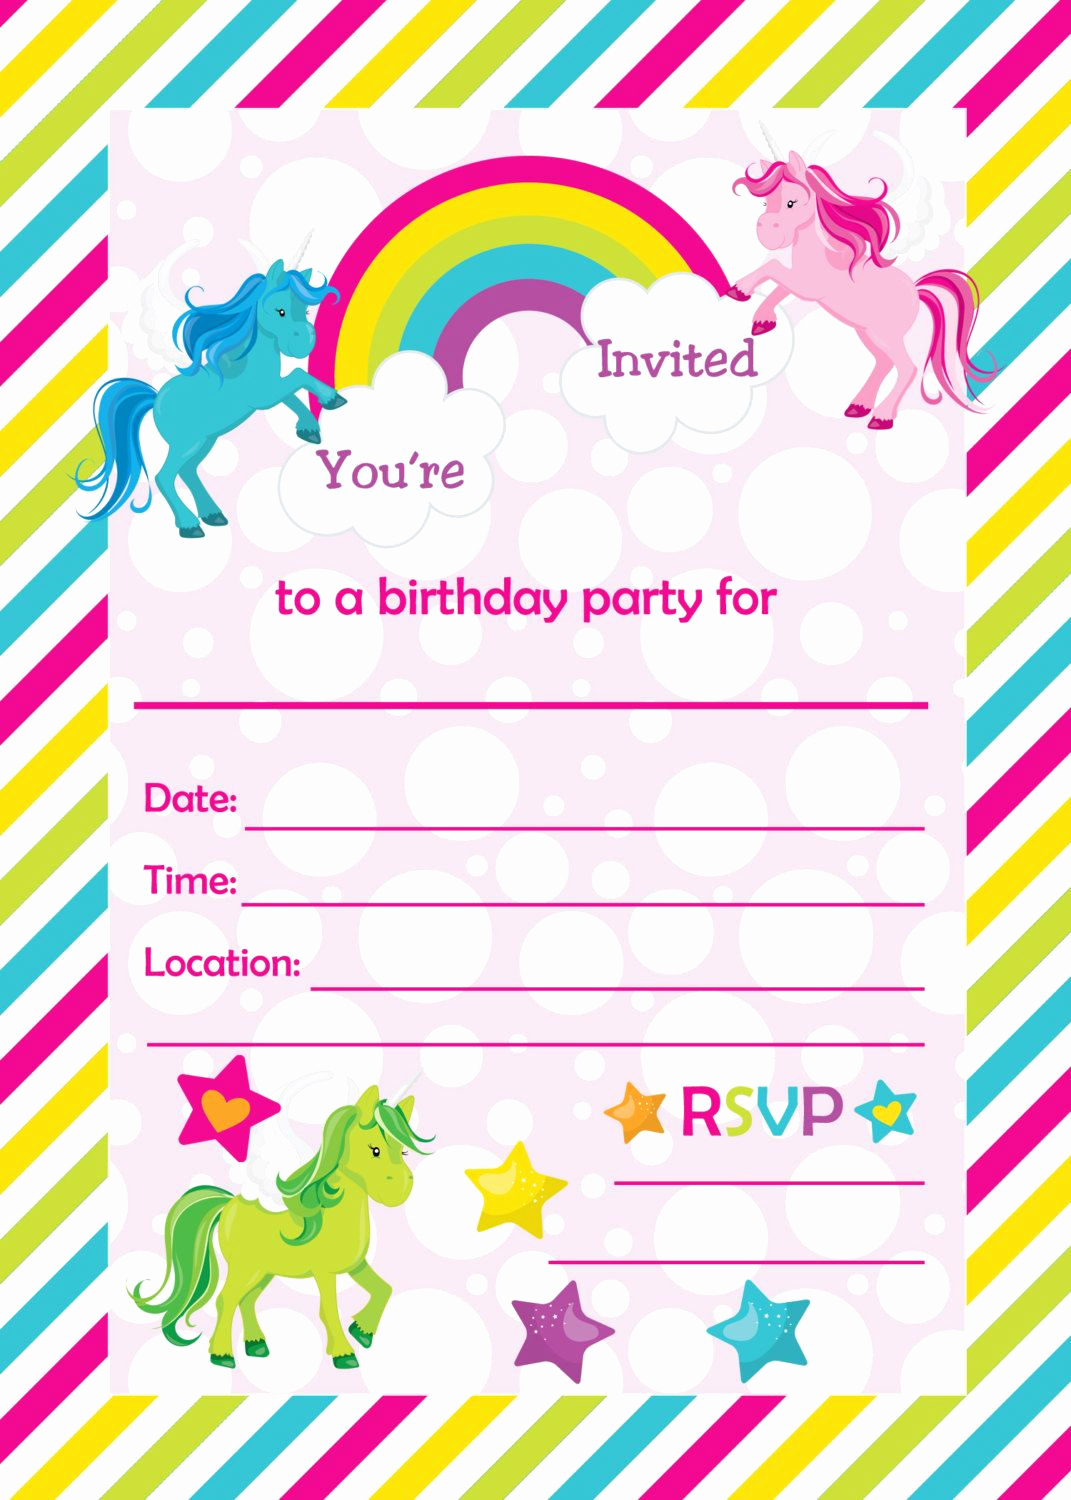 Free Birthday Party Invitation Templates Elegant Fill In Birthday Party Invitations Printable Rainbows and